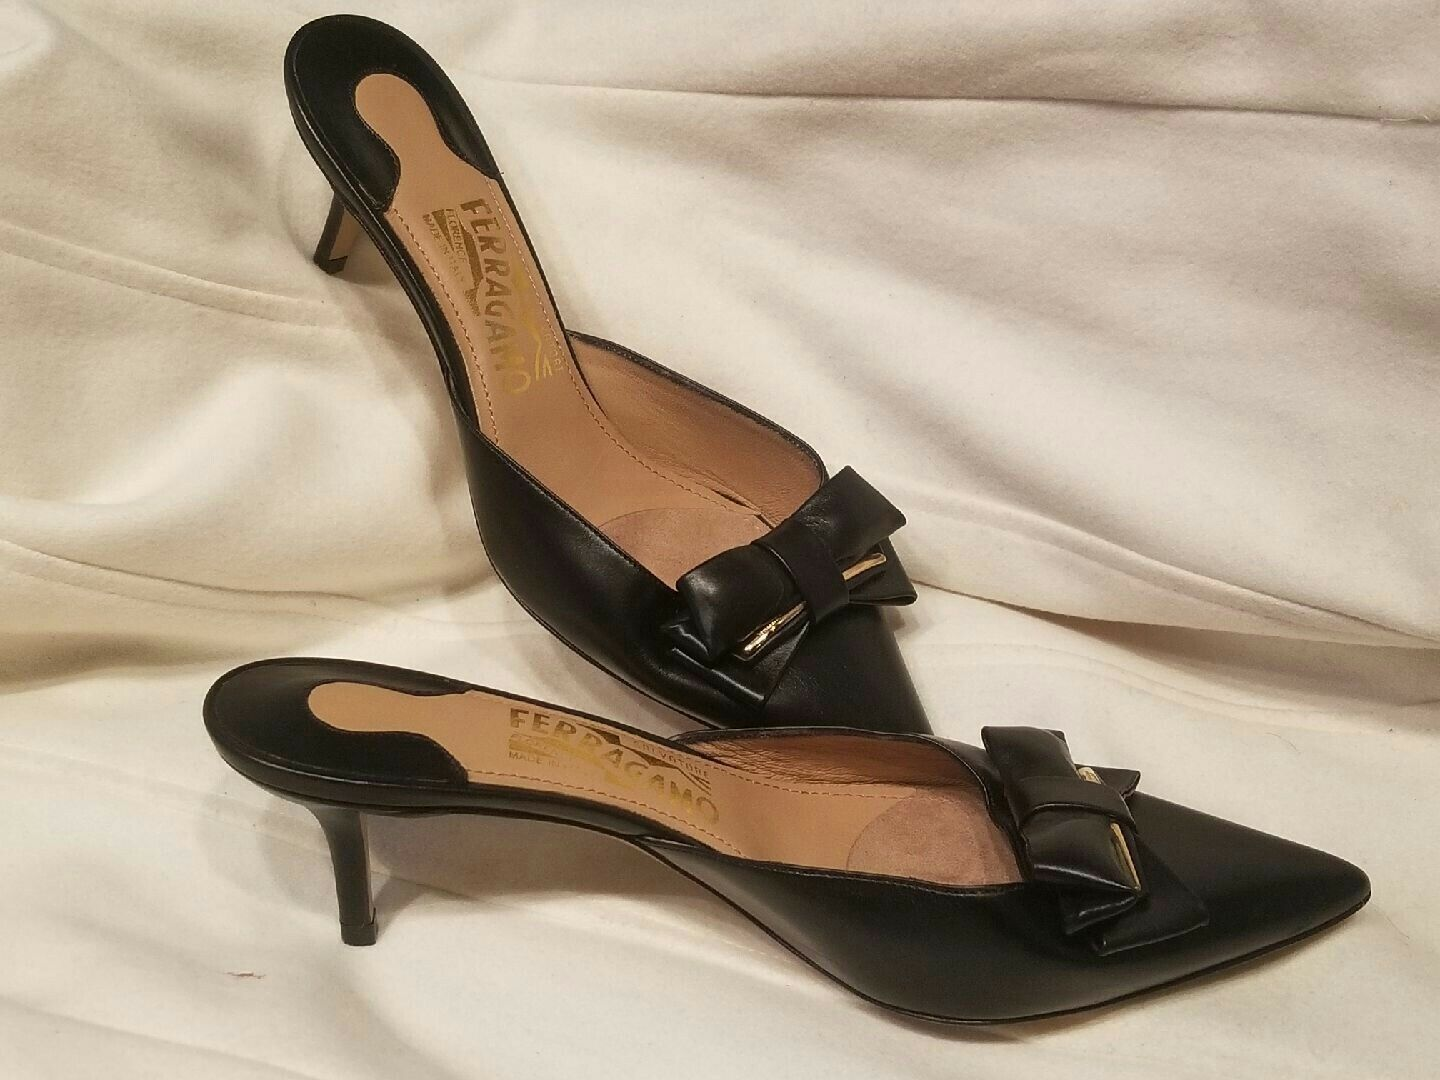 SALVATORE FERRAGAMO BLACK LEATHER WOMEN'S MULES HEELS SHOES, SIZE SIZE SIZE 8.5 B f197b1